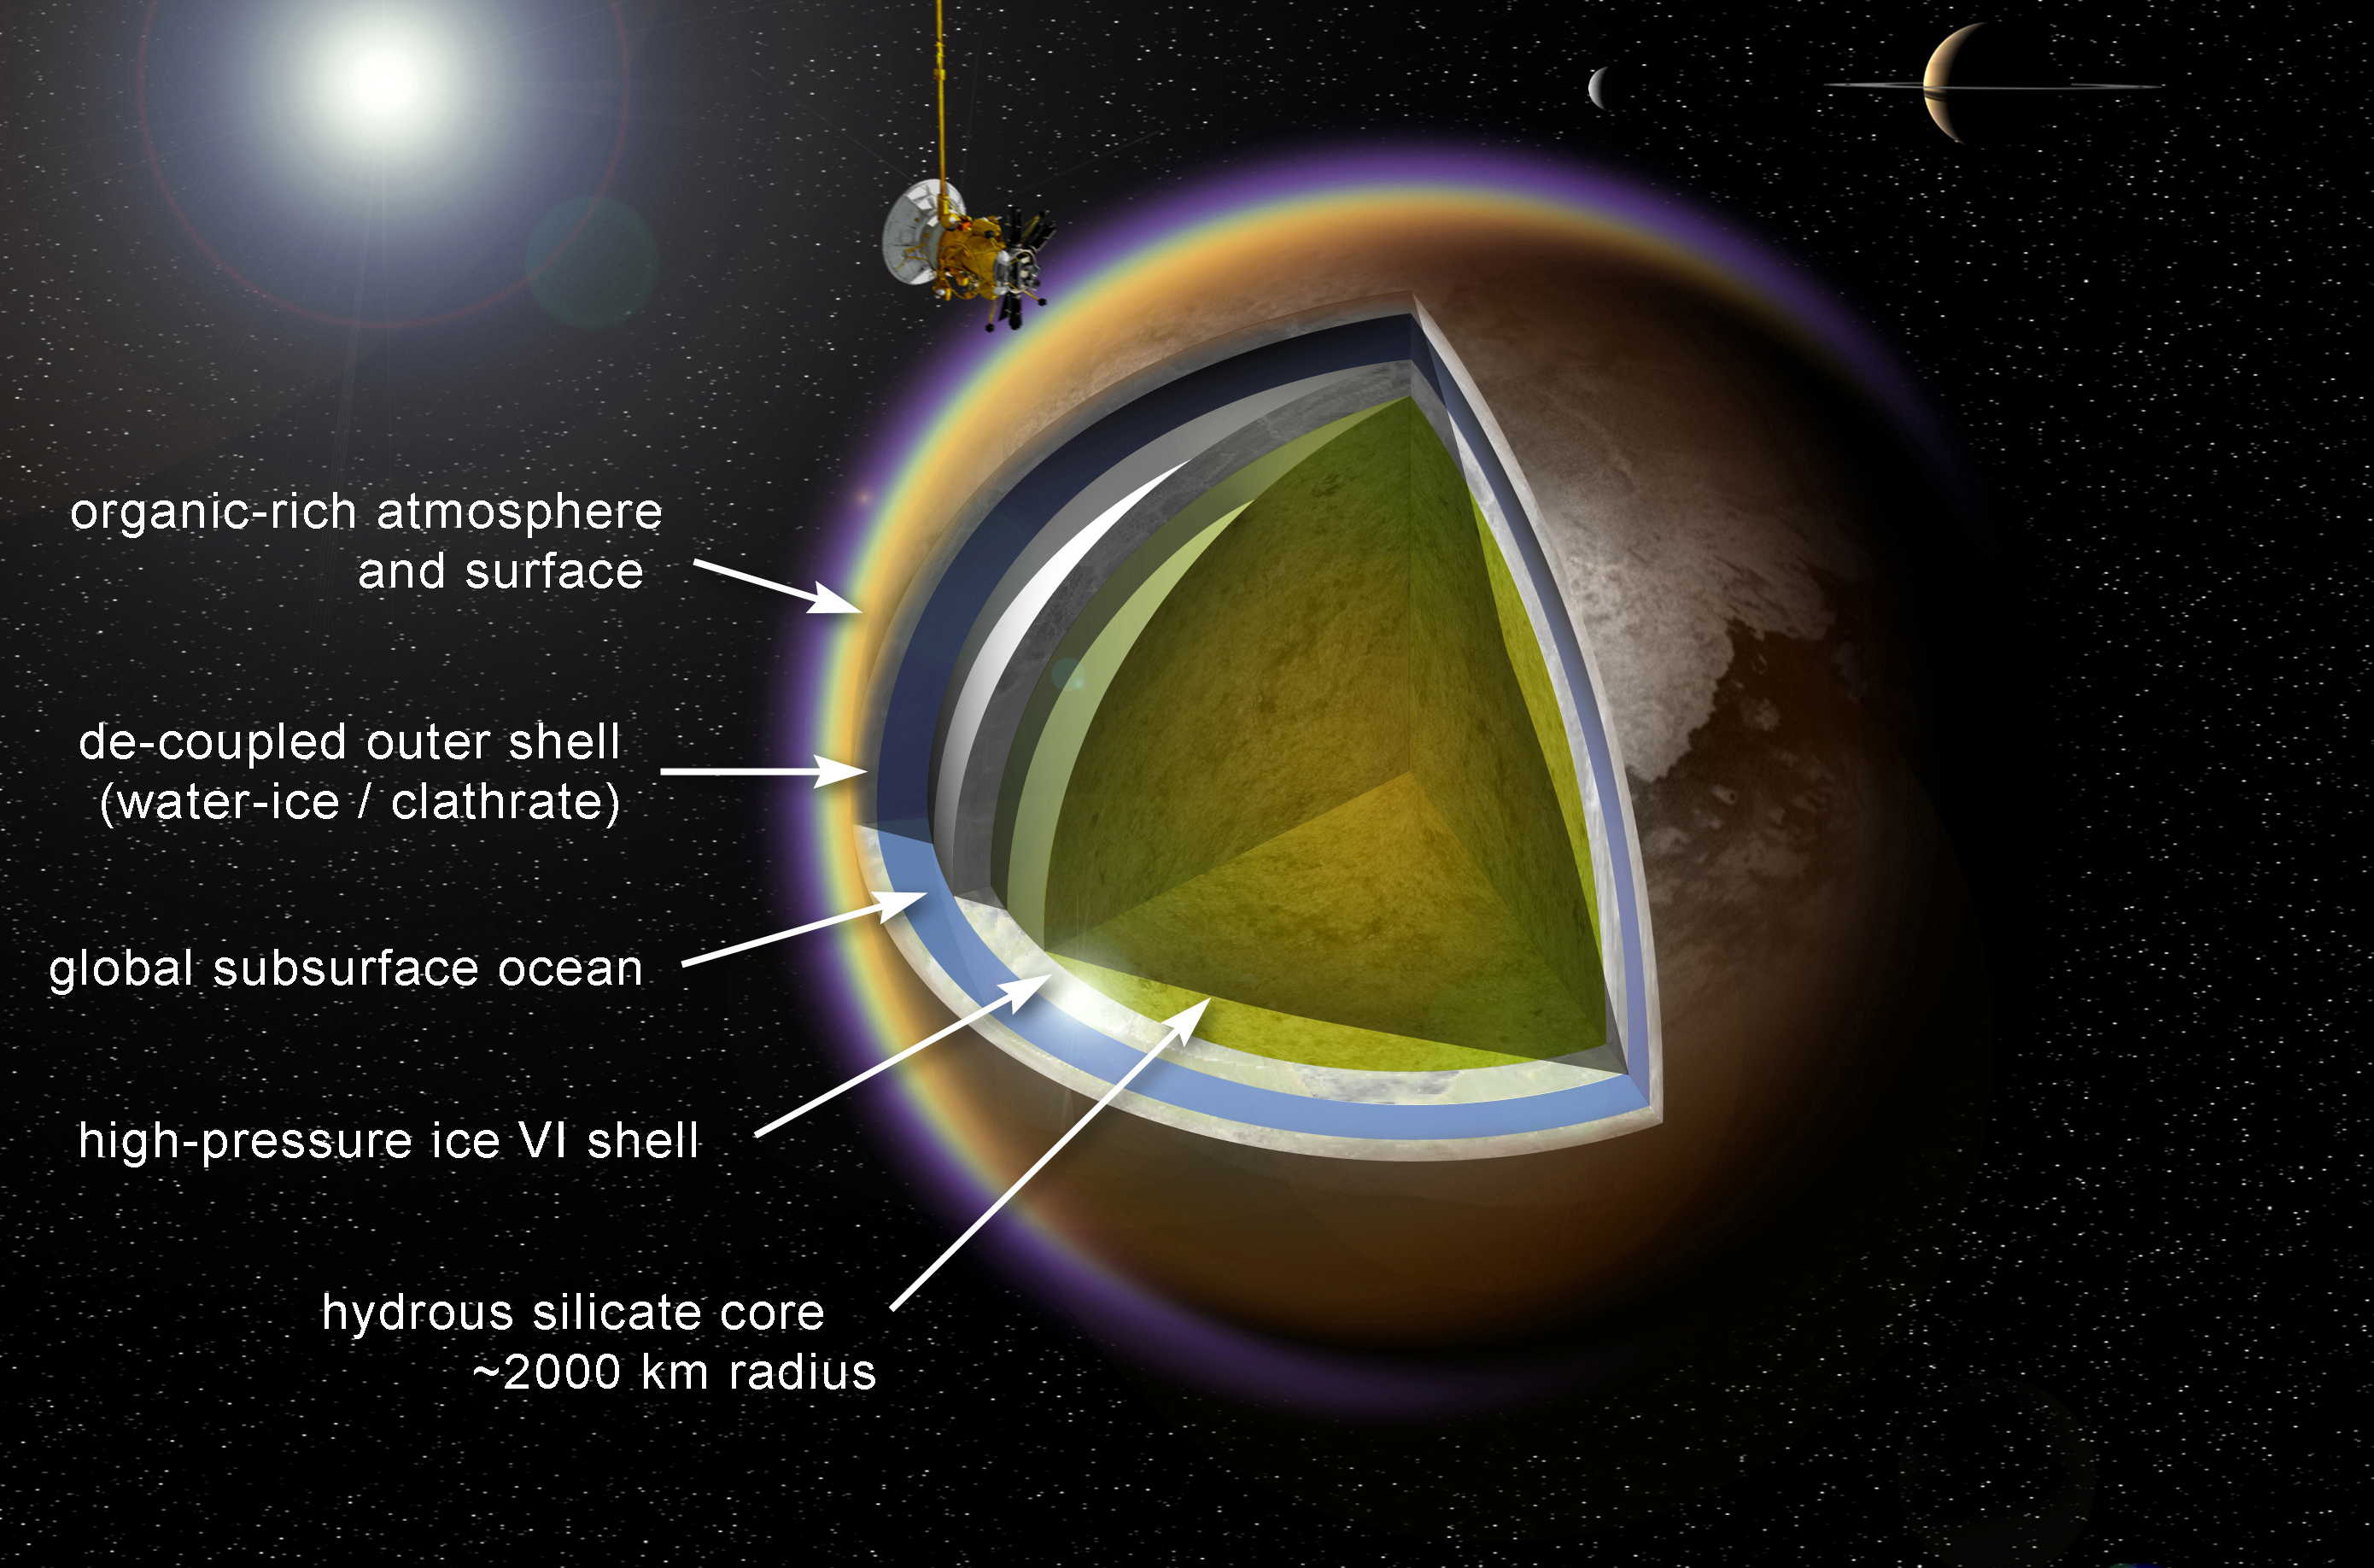 A cross-section of what the interior of Titan might look like, with organic chemistry in the atmosphere and on the surface, above a crust of ice that encases a global ocean, which in turn may lie on top of another ice layer surrounding a rocky core.